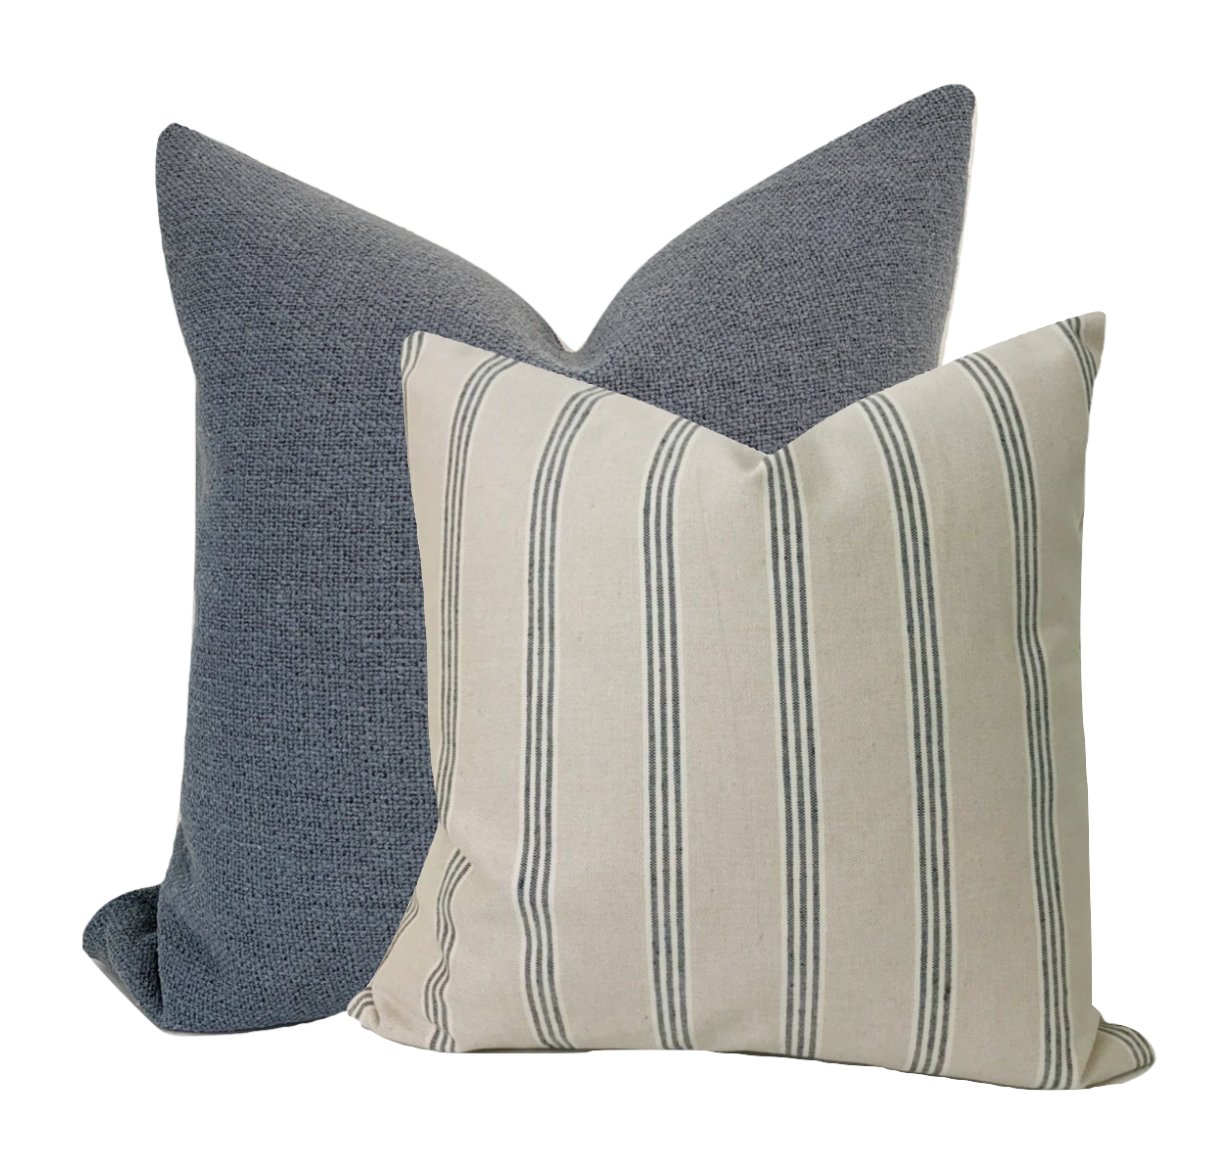 Pillow Set, Pillow Grouping, Pillow collection, Pillow set for couch, Pillow Set for bench, Farmhouse Pillow Set, Beige Pillow Set, Gray Pillow Set